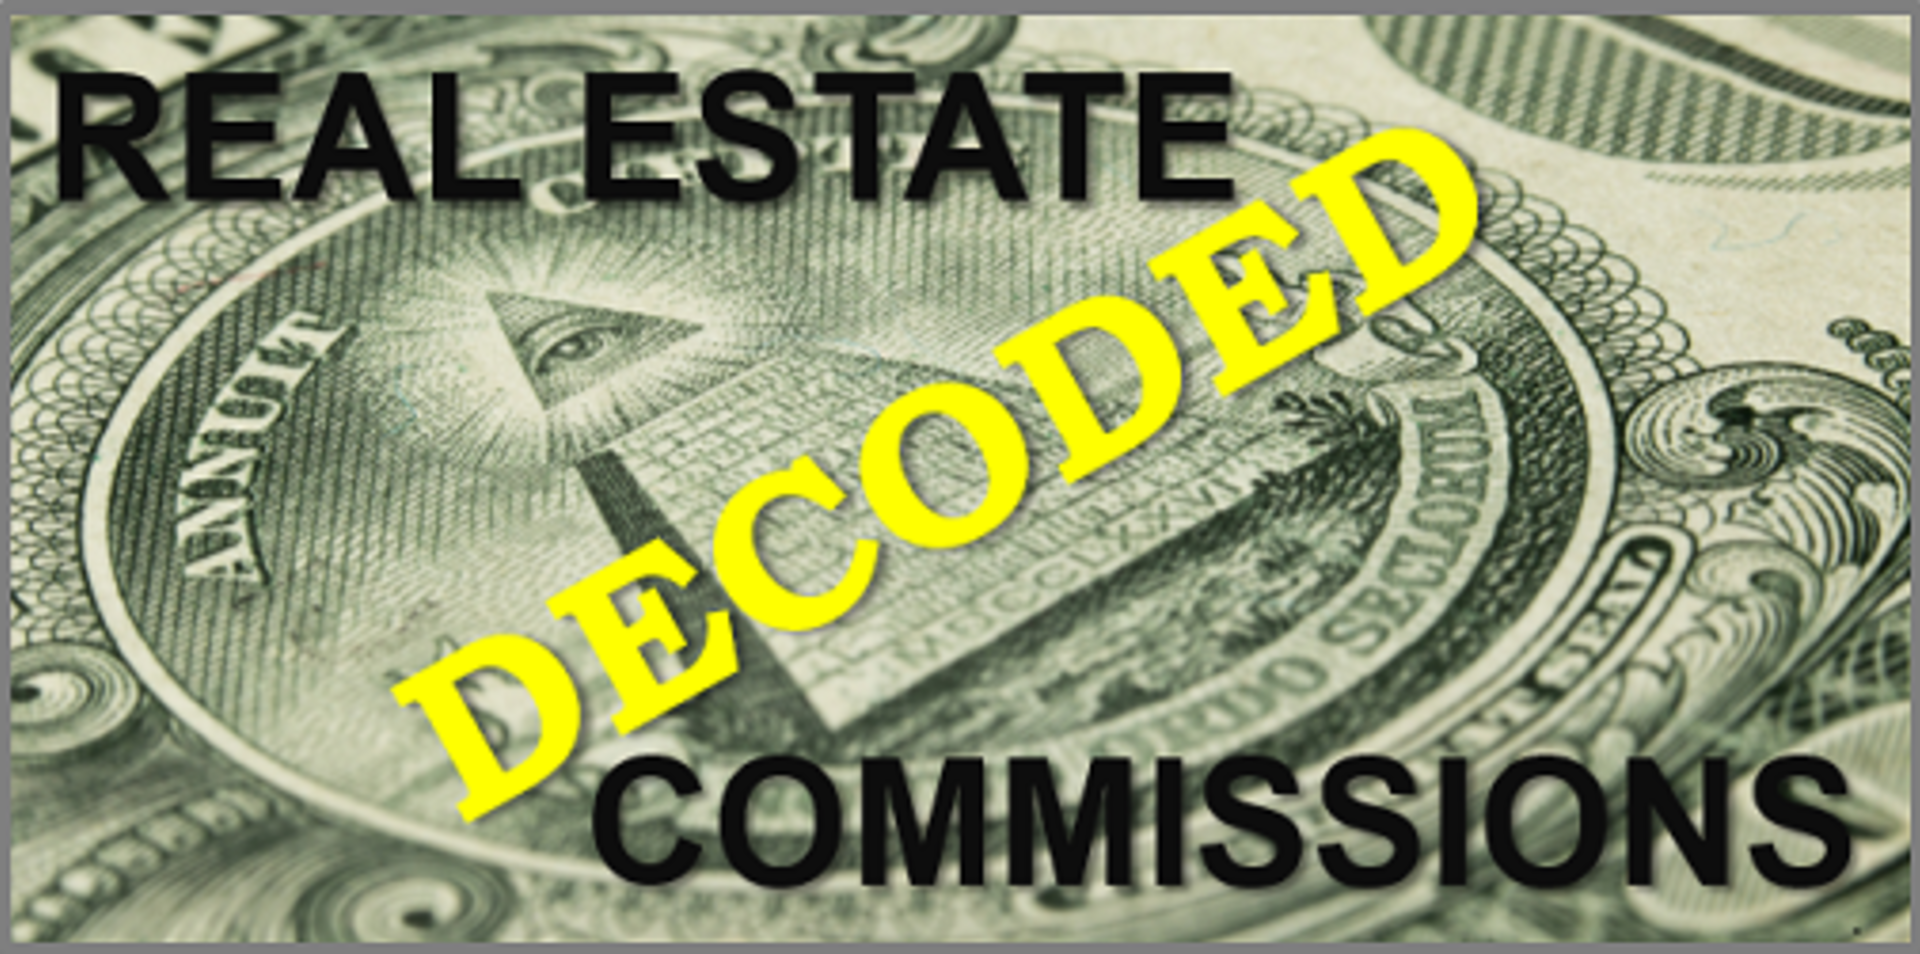 Real Estate Commissions Decoded